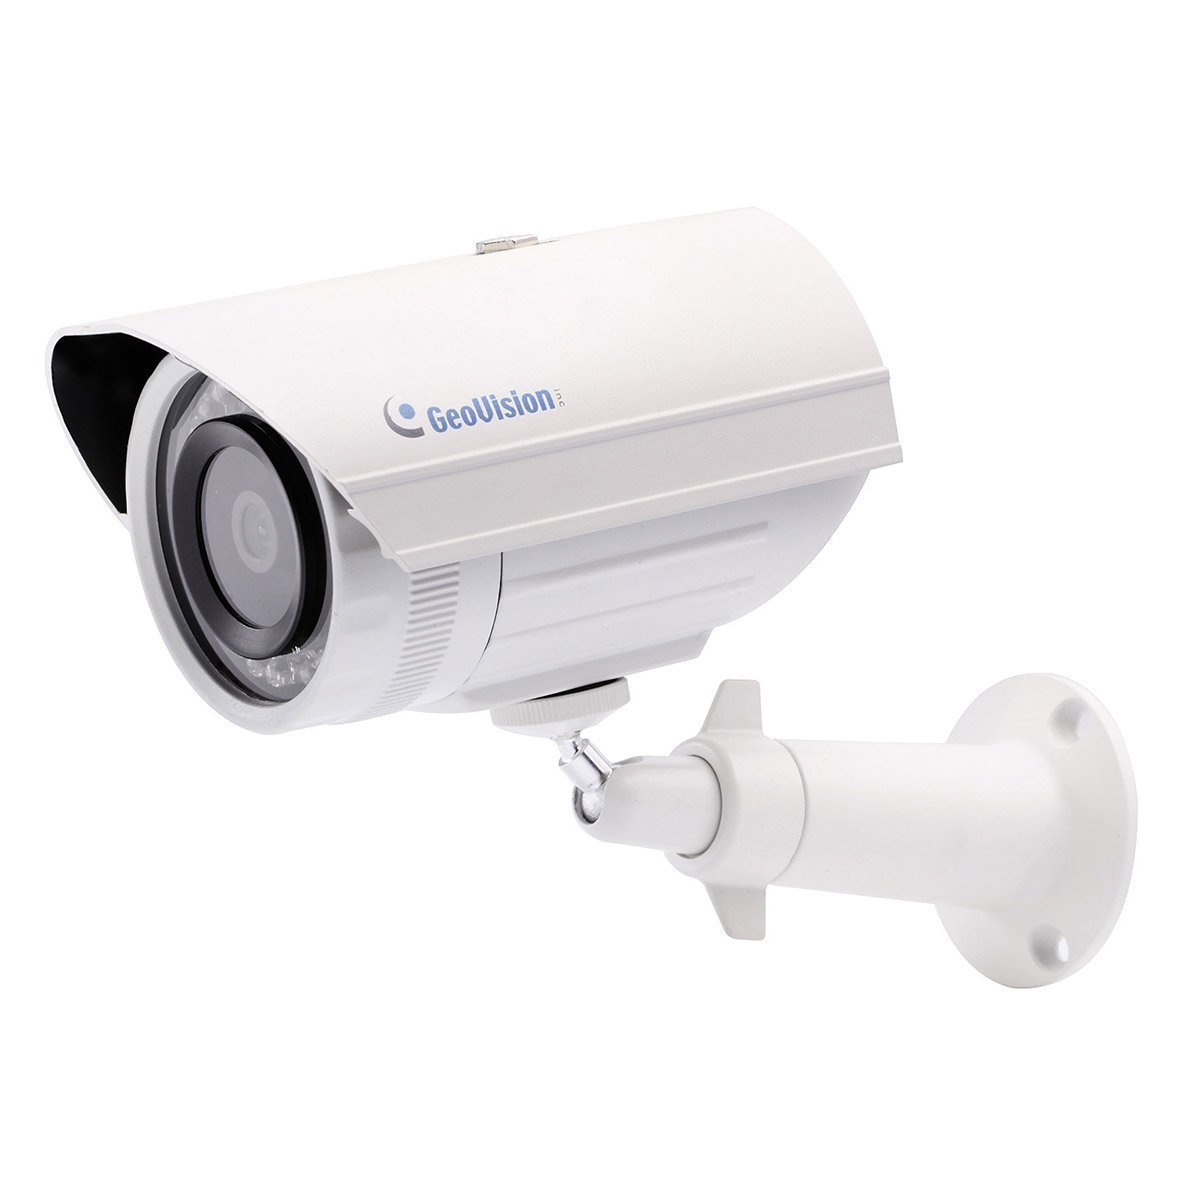 Geovision GV-EBL1100-2F | Target series 1.3 MP 3.8mm, H.264, Low Lux, WDR, IR, IP Outdoor Bullet Camera